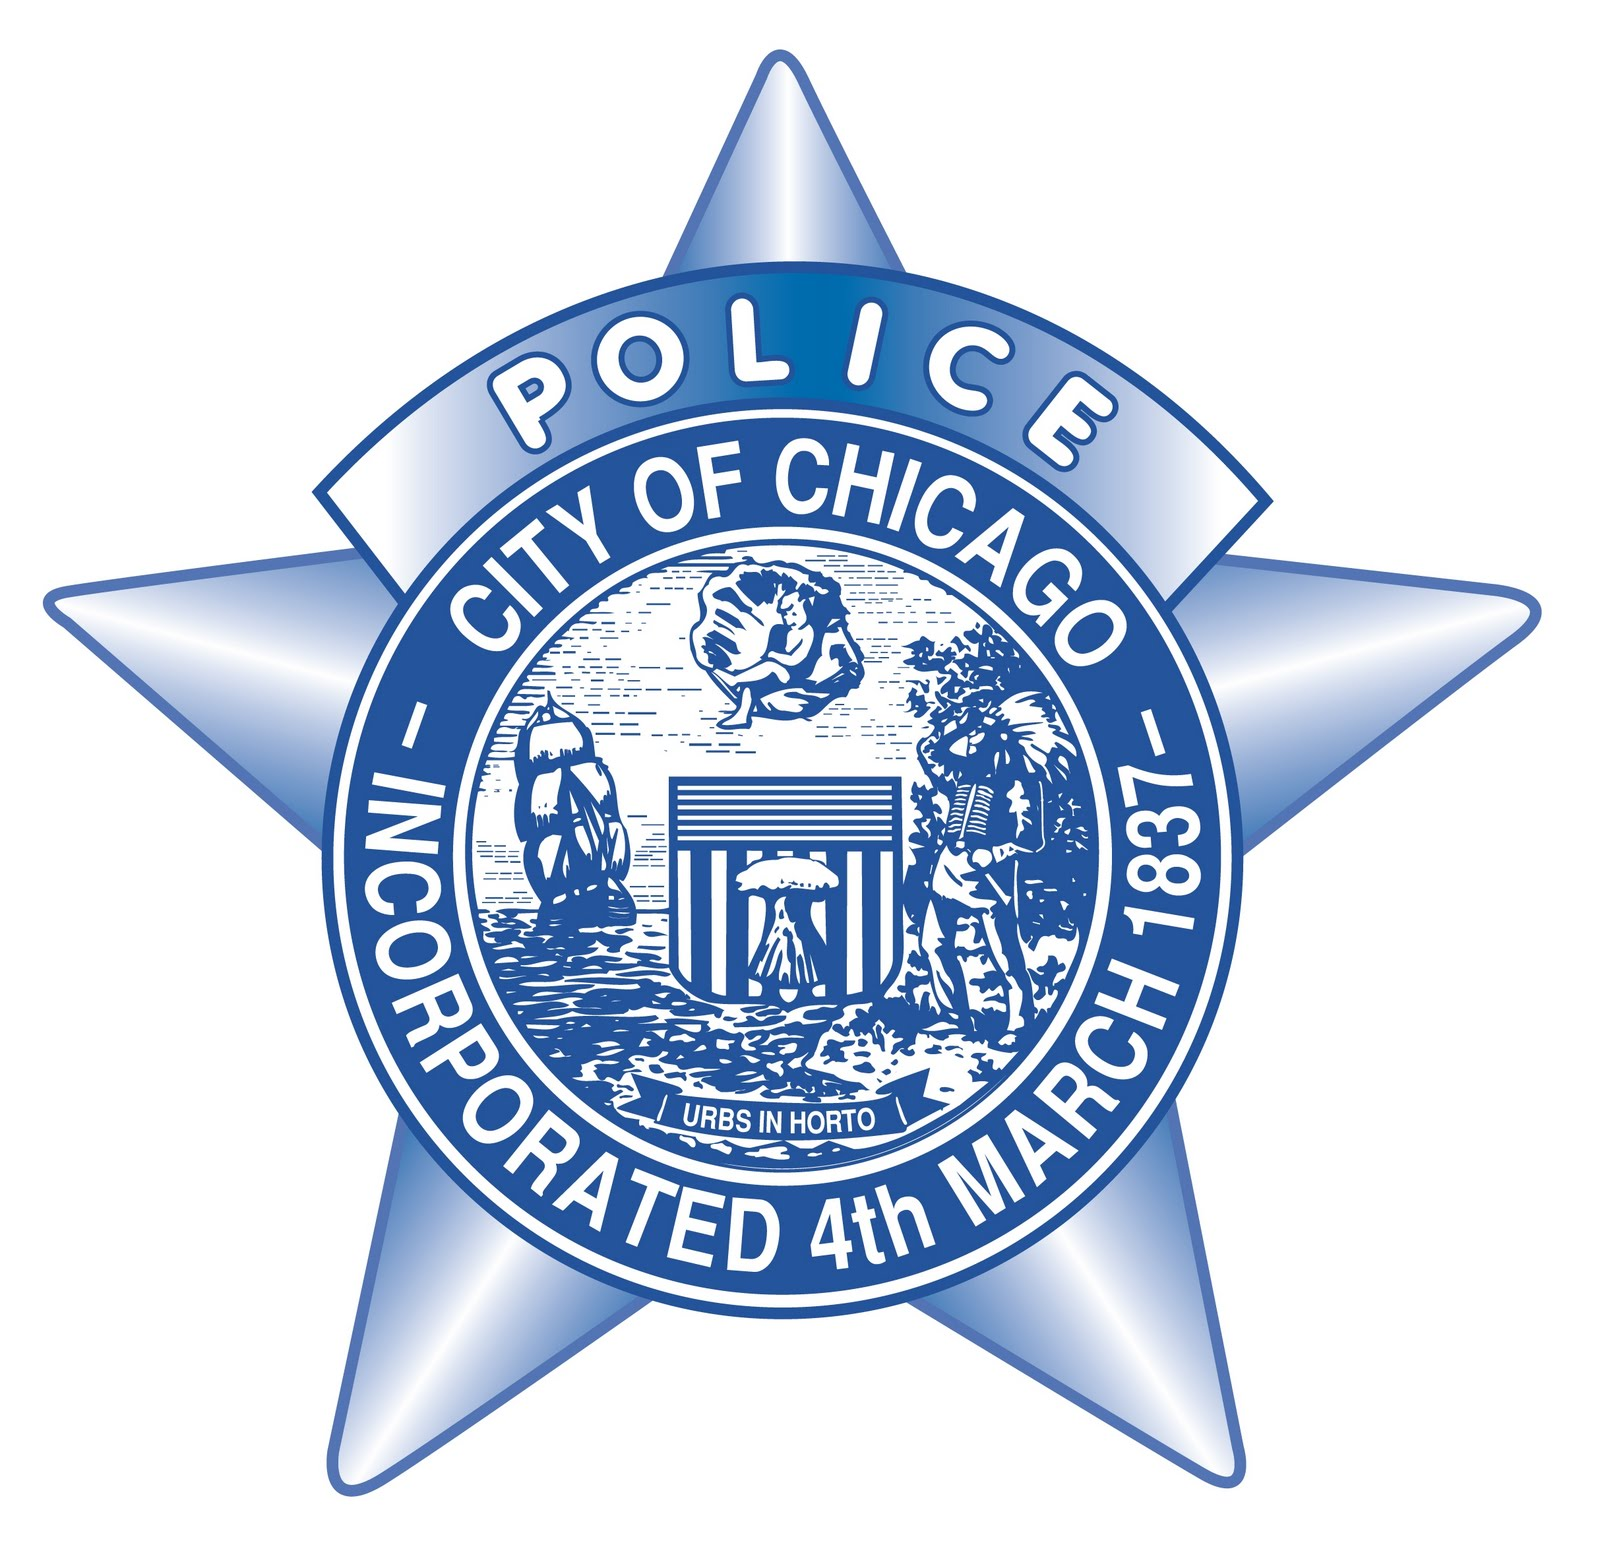 Chicago police department clipart png freeuse stock Chicago Police Department | Marvel Cinematic Universe Wiki | FANDOM ... png freeuse stock